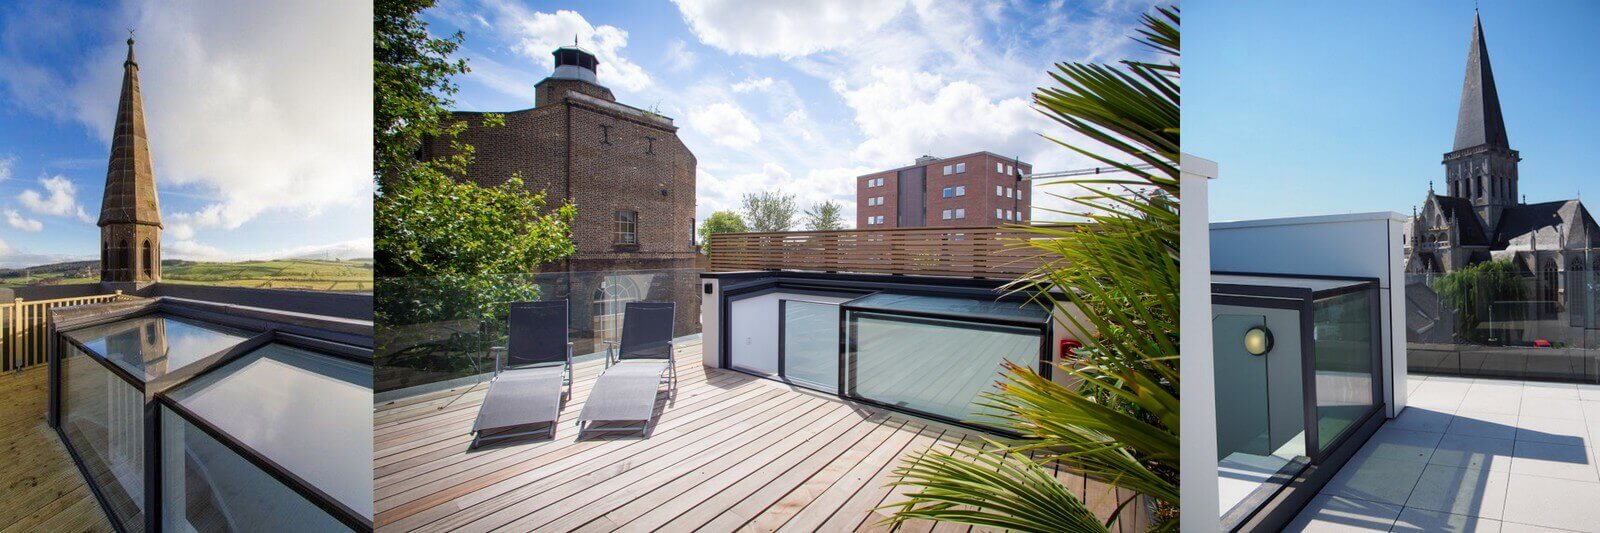 Using box rooflights to boost property value